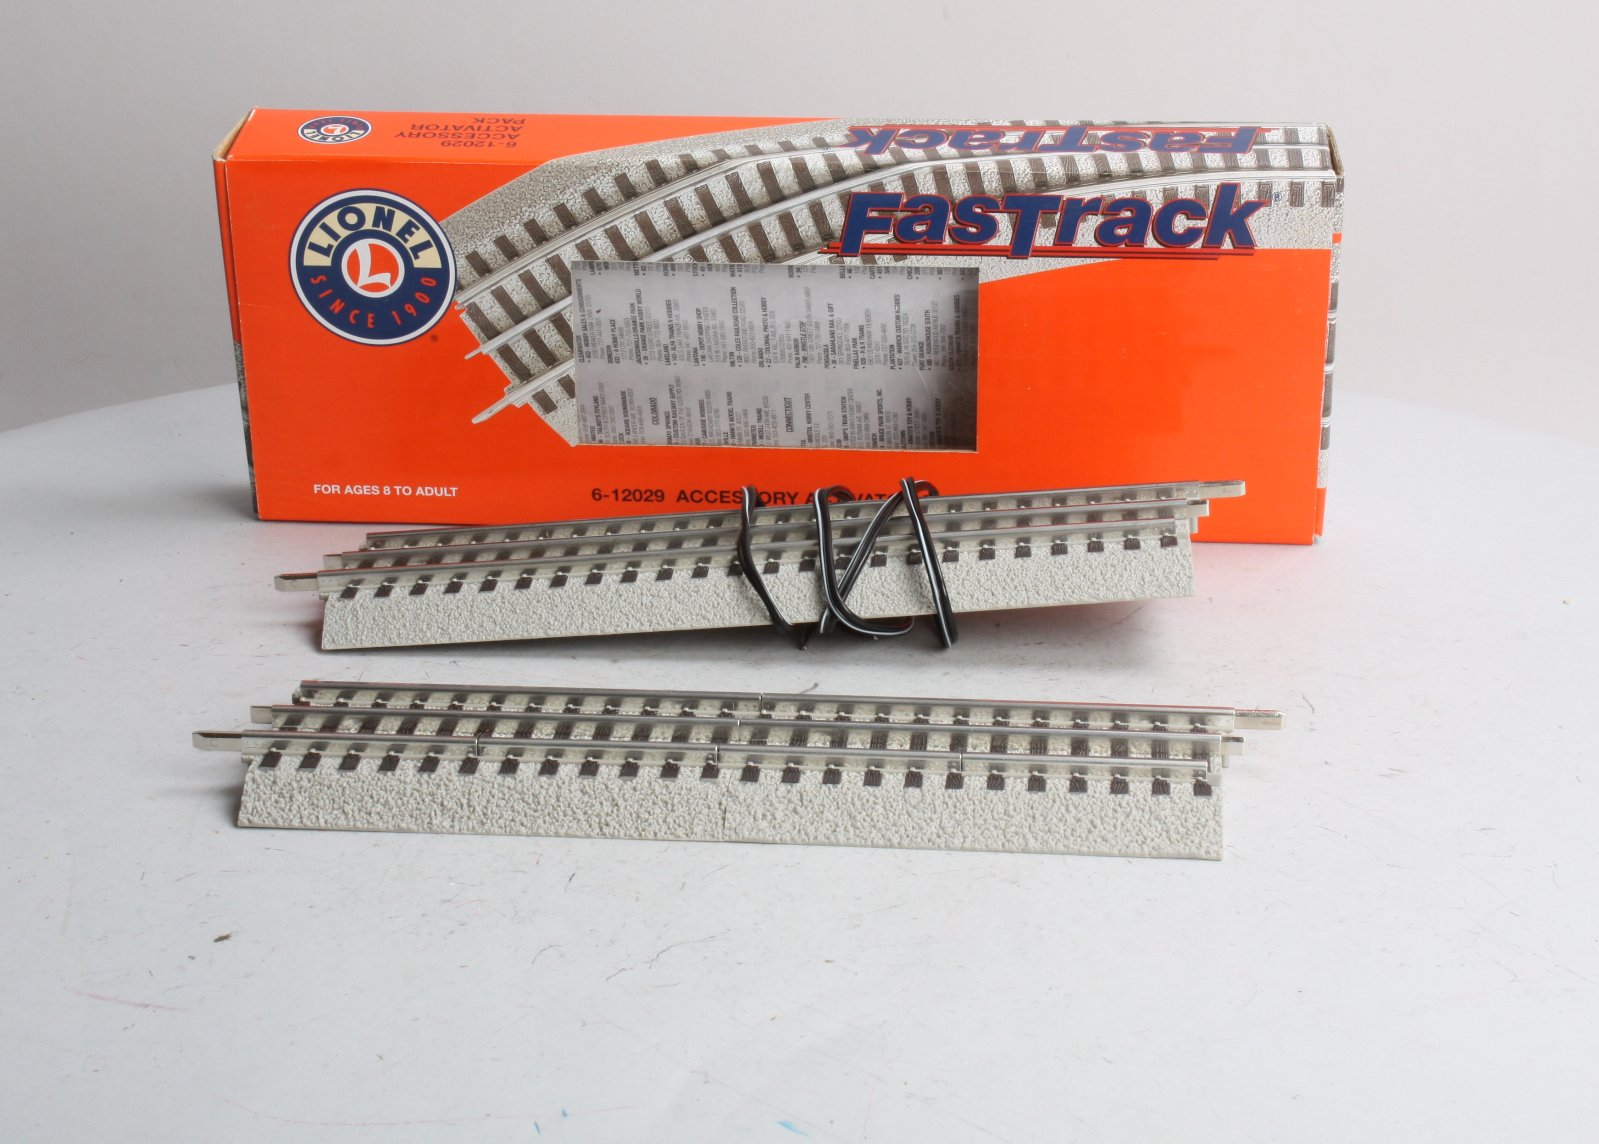 Lionel 6-12029 FasTrack Accessory Activator Pack This is a single Lionel 6-12029 FasTrack Accessory Activator Pack. With this pack you get two 5 inch insulated half sections of track and one regular 10 inch straight section. Use the insualted sections to trip accessories like crossing gates and highway signals. Run a wires from the insulated rail and the center rail of the activator track to activate your accessories when the train passes over. The straight track is included to add the same length of track to the other side of an oval for example.Condition: Factory New (C-9All original; unused; factory rubs and evidence of handling, shipping and factory test run.Standards for all toy train related accessory items apply to the visual appearance of the item and do not consider the operating functionality of the equipment.Condition and Grading Standards are subjective, at best, and are intended to act as a guide. )Operational Status: FunctionalThis item is brand new from the factory.Original Box: Yes (P-9May have store stamps and price tags. Has inner liners.)Manufacturer: LionelModel Number: 6-12029Years Manufactured: 2003 - ????MSRP: $20.99Scale/Era: O ModernModel Type: Track/Switches/Etc.Availability: Ships within 3 Business Days!The Trainz SKU for this item is P11392536. Track: 11392536 - 4002-B (Suite 2730-100)  - 001 - TrainzAuctionGroup00UNK - TDIDUNK